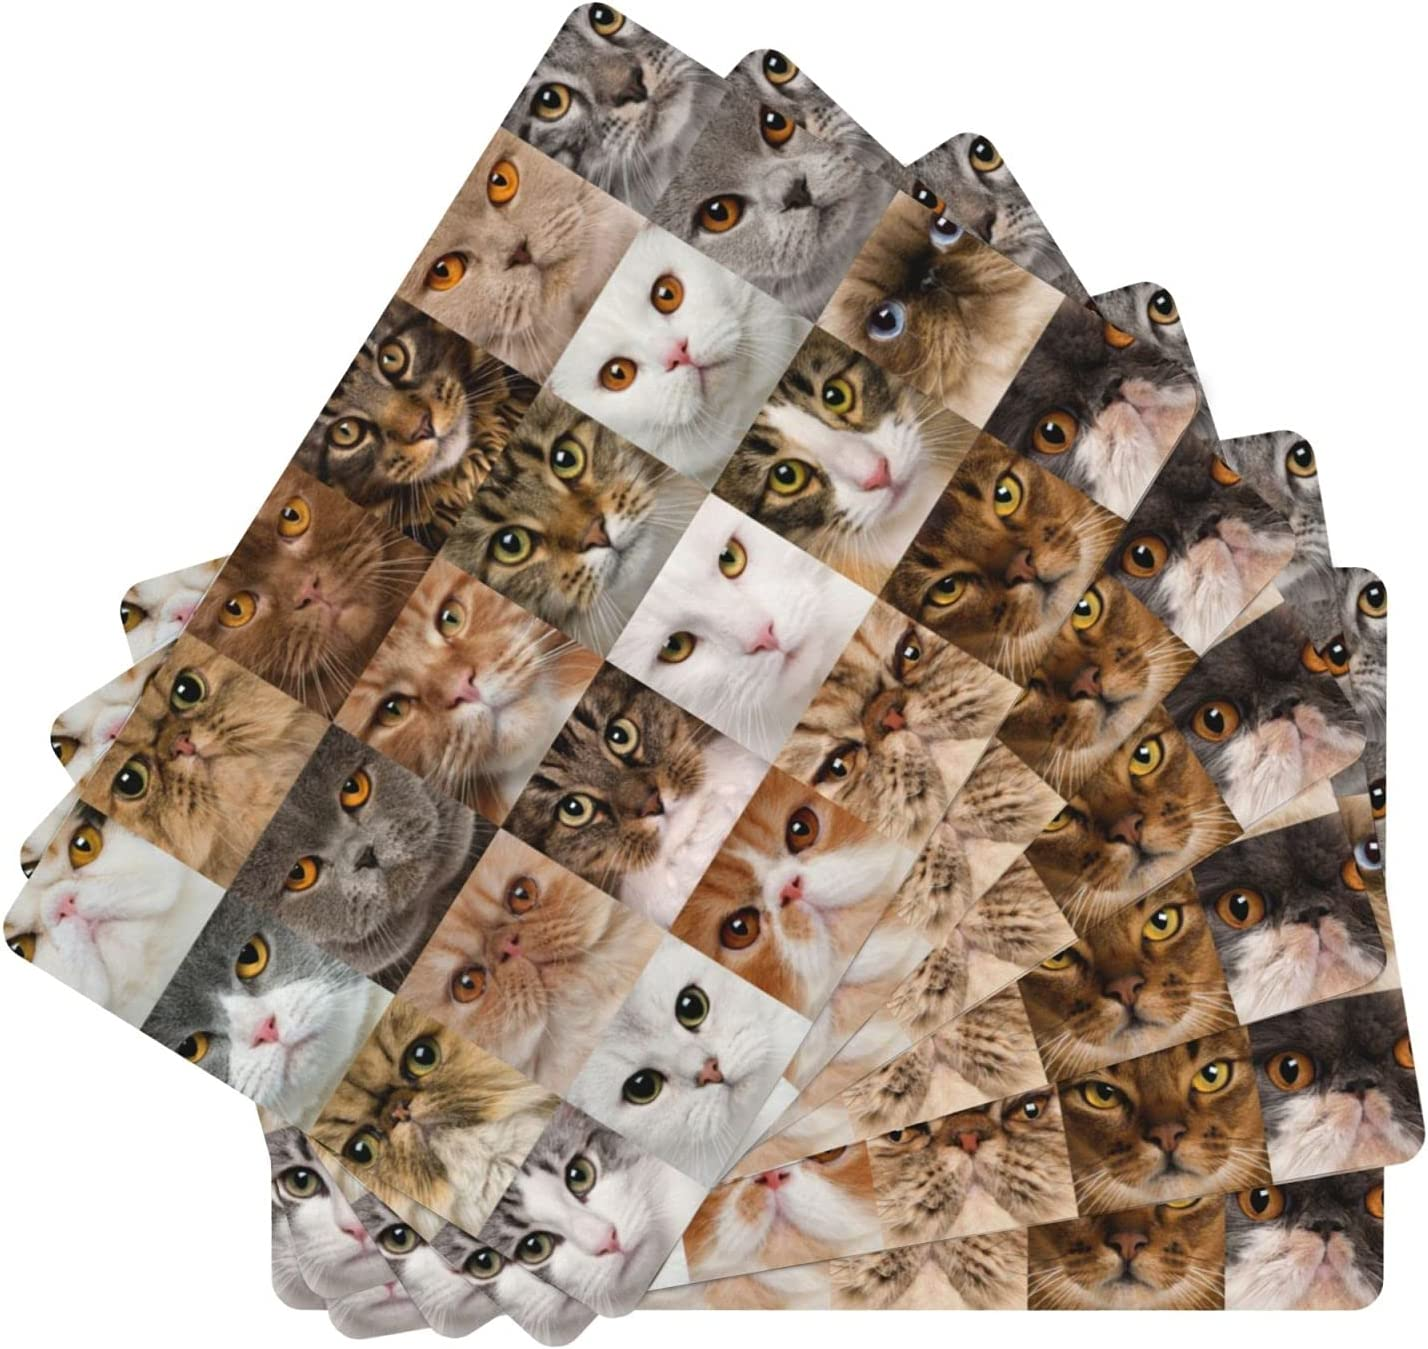 Attention brand Portrait of Genuine Various cat Placemat Leather 6 Eas Set Table Mats